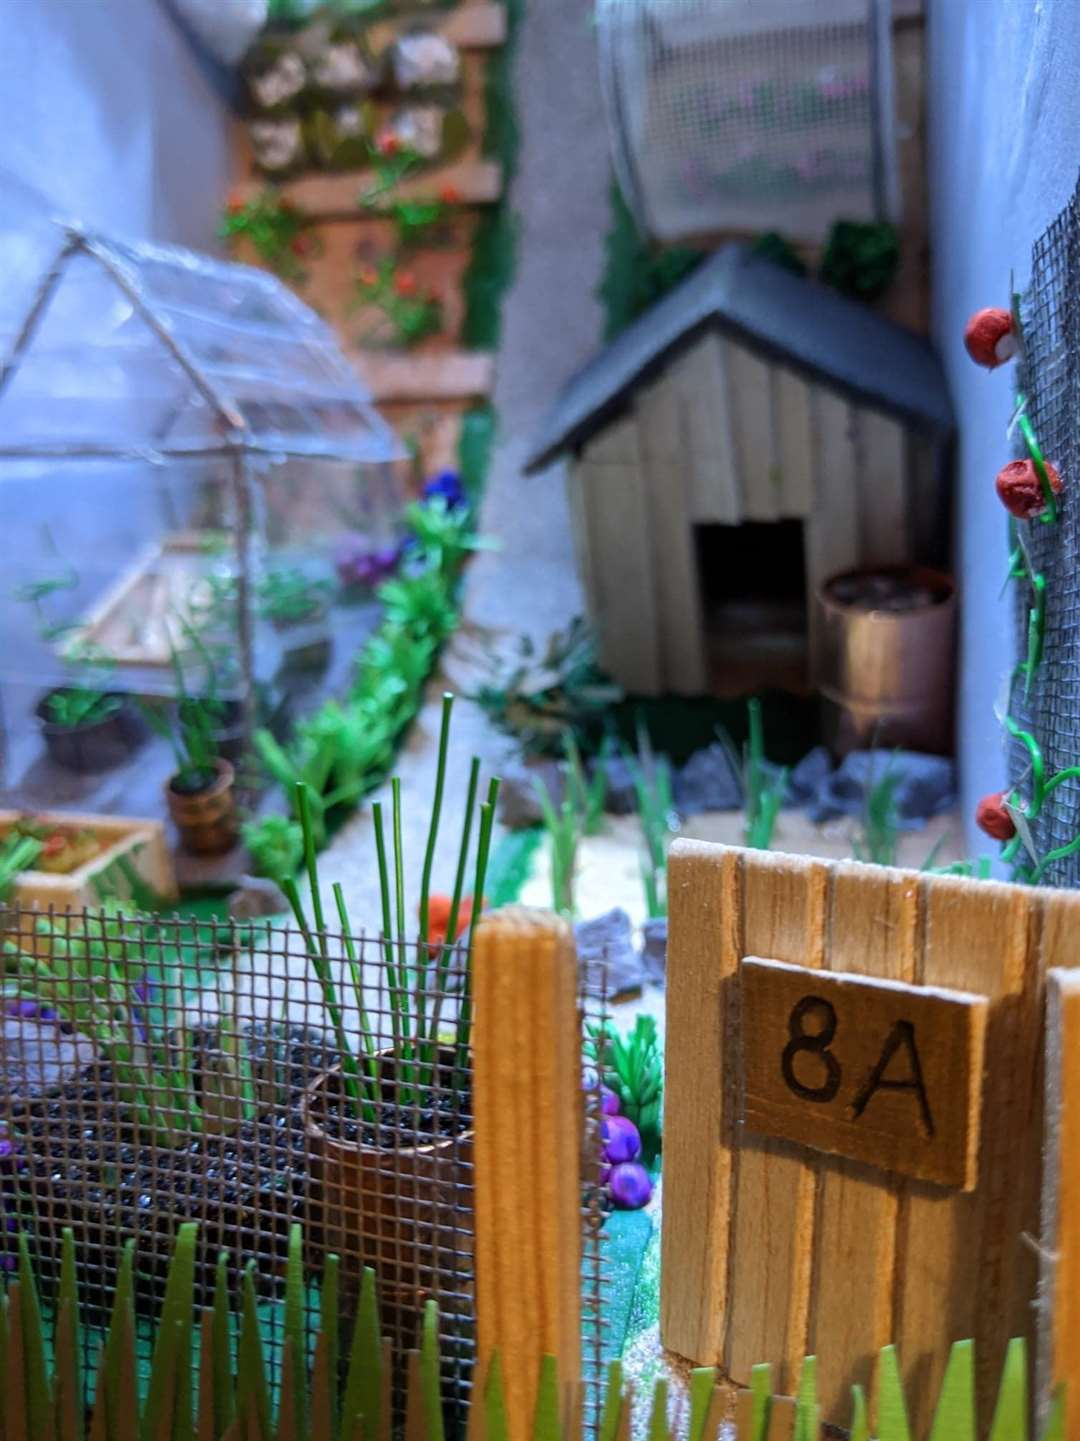 The allotment book nook, created by Laura Mabbutt, based on her own allotment. (44073956)